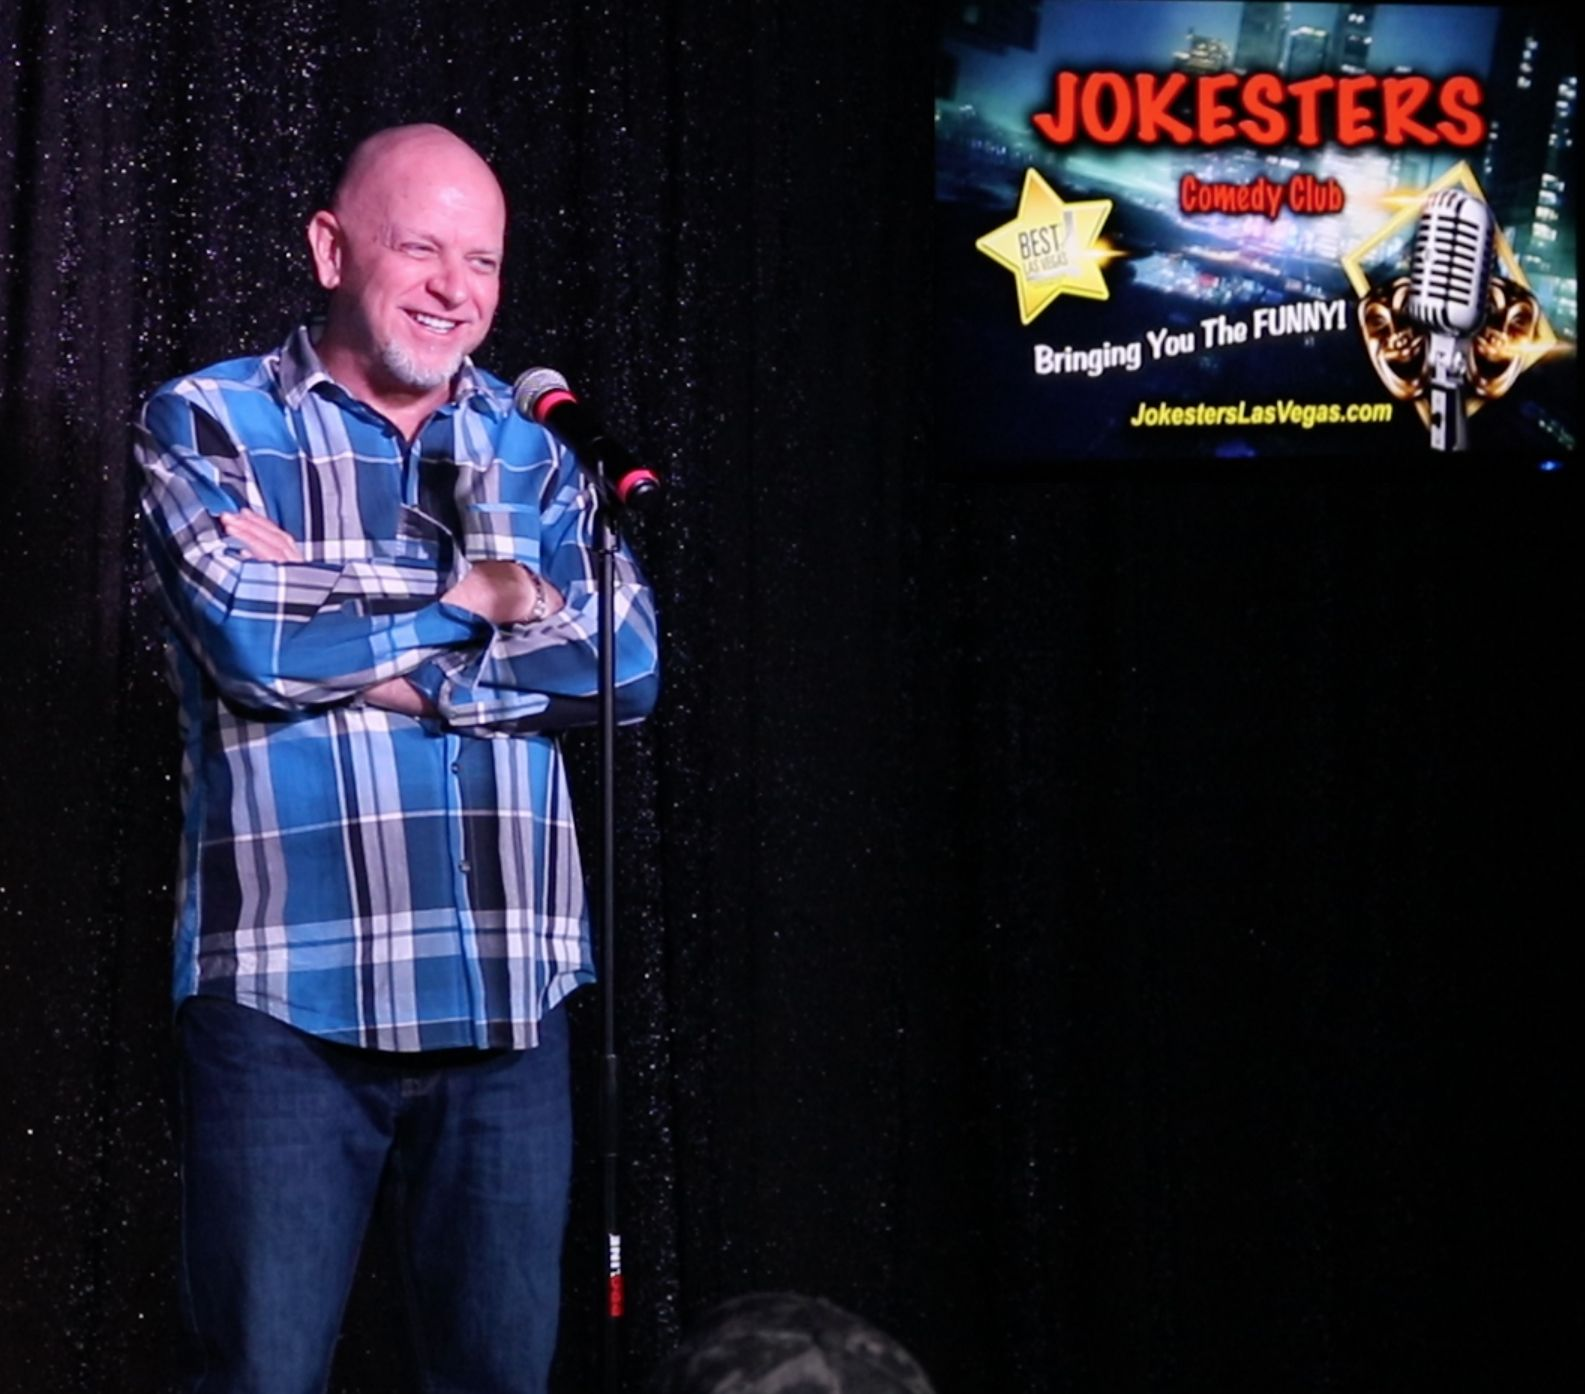 Jokesters Comedy Club Brings Nightly Laughter